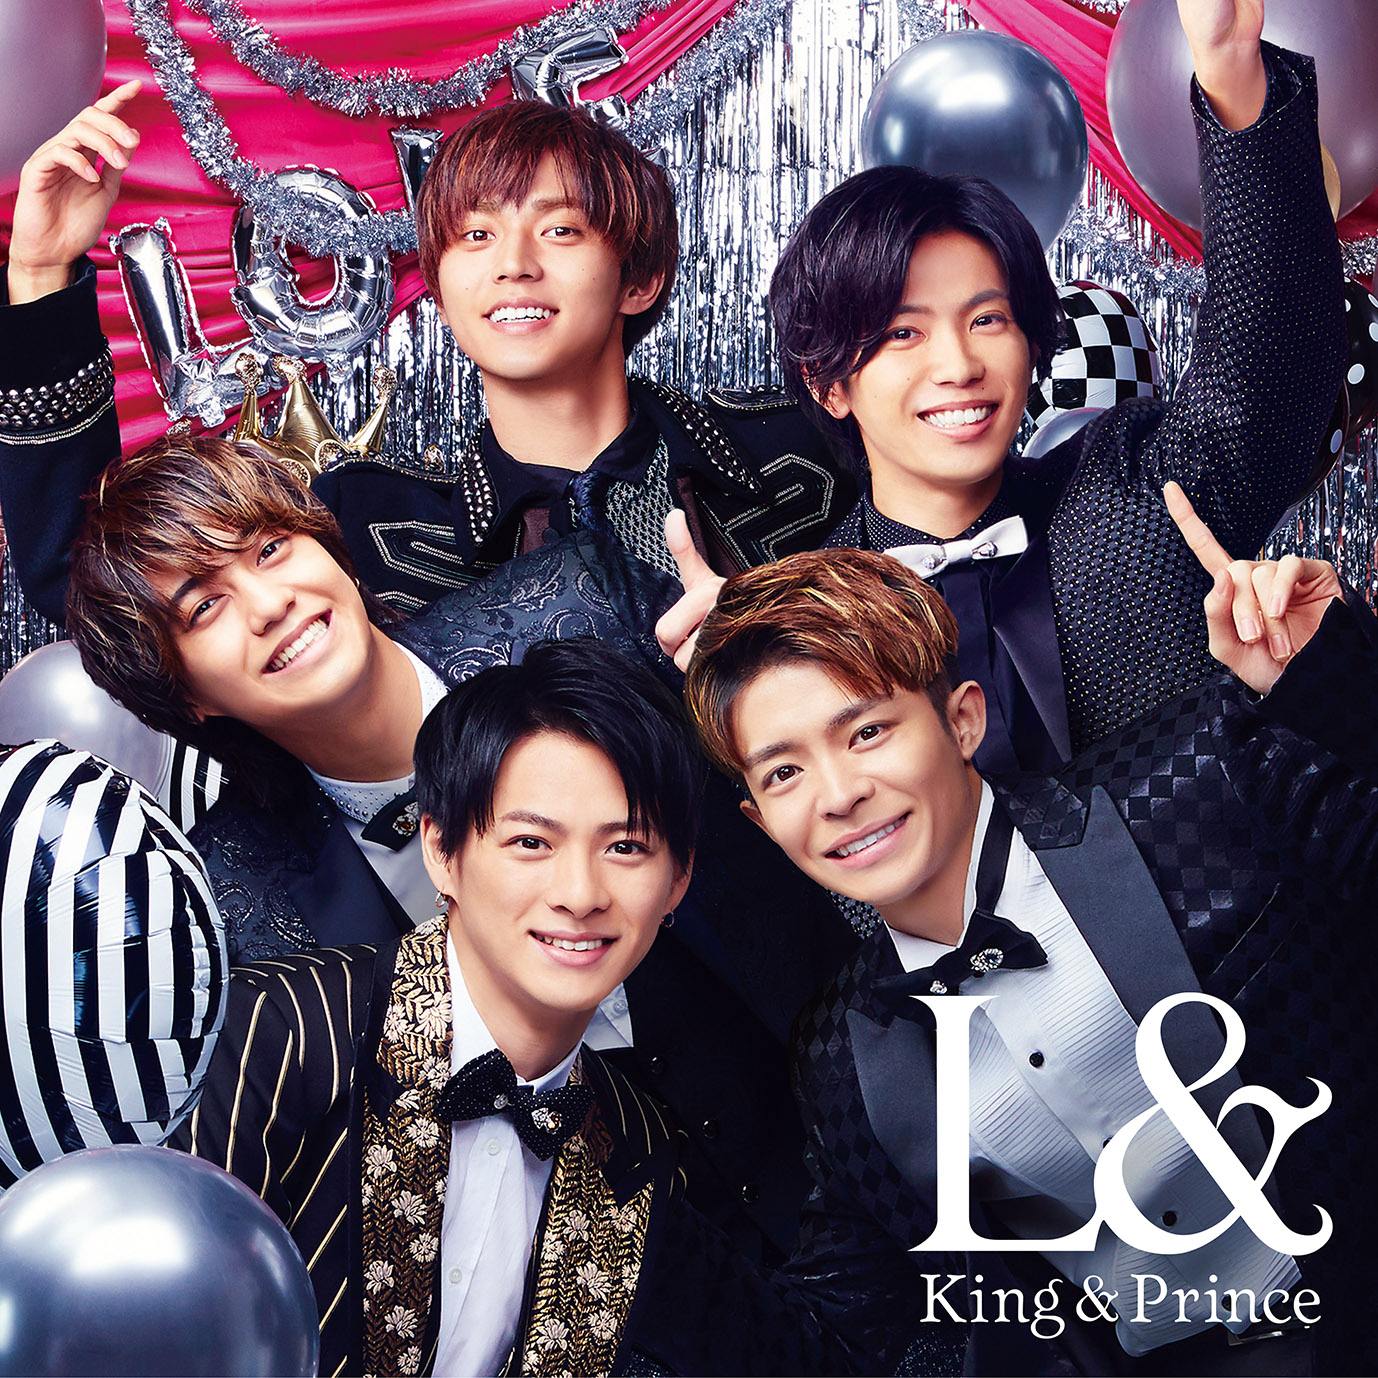 King & Prince-L& 普通盤(CD only)